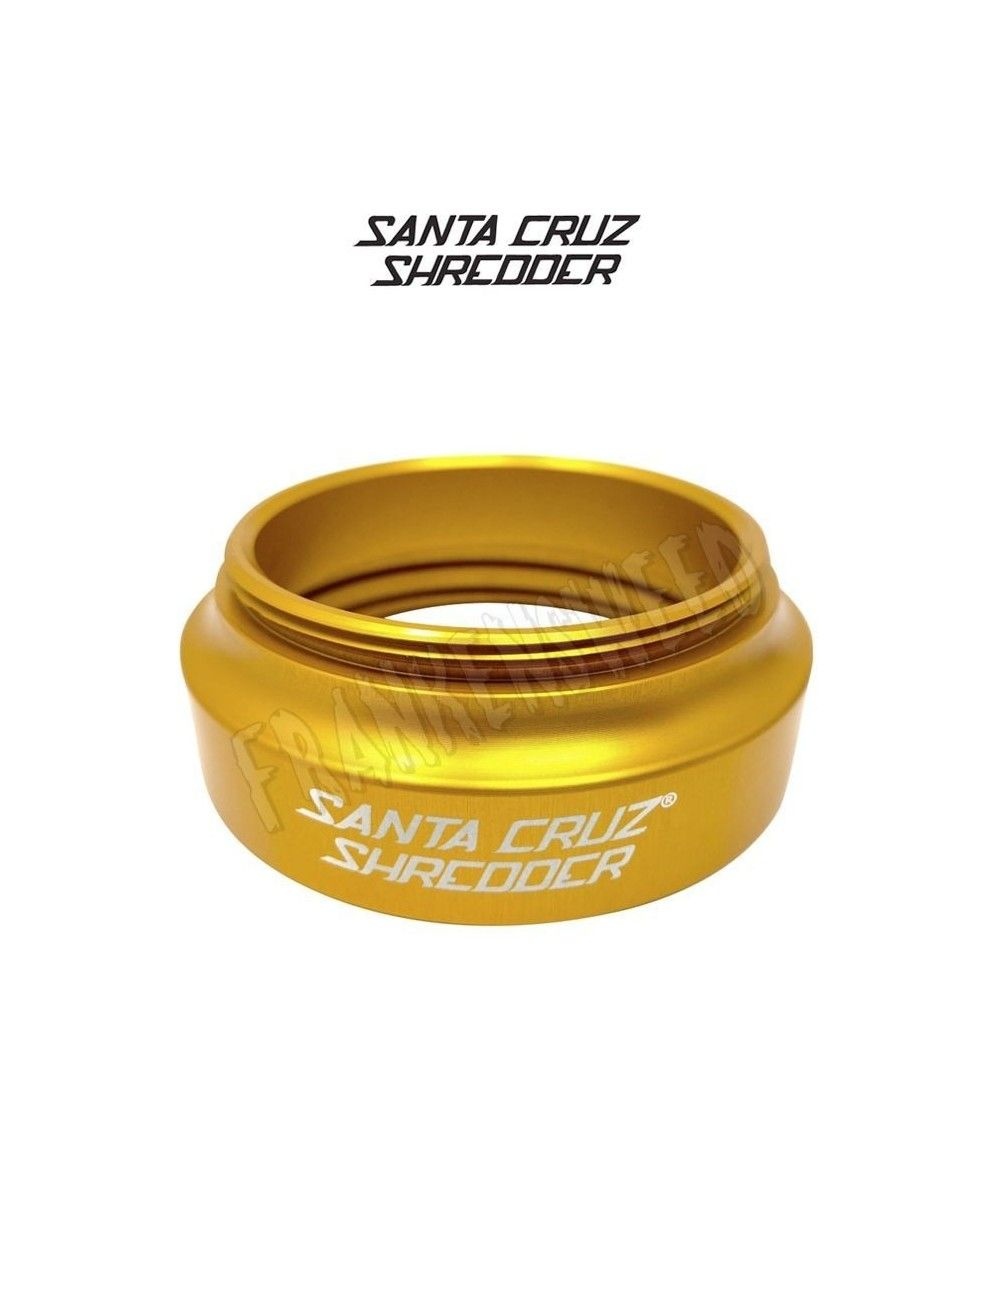 Santa Cruz Shredder Mason Jar Adapter - Gold